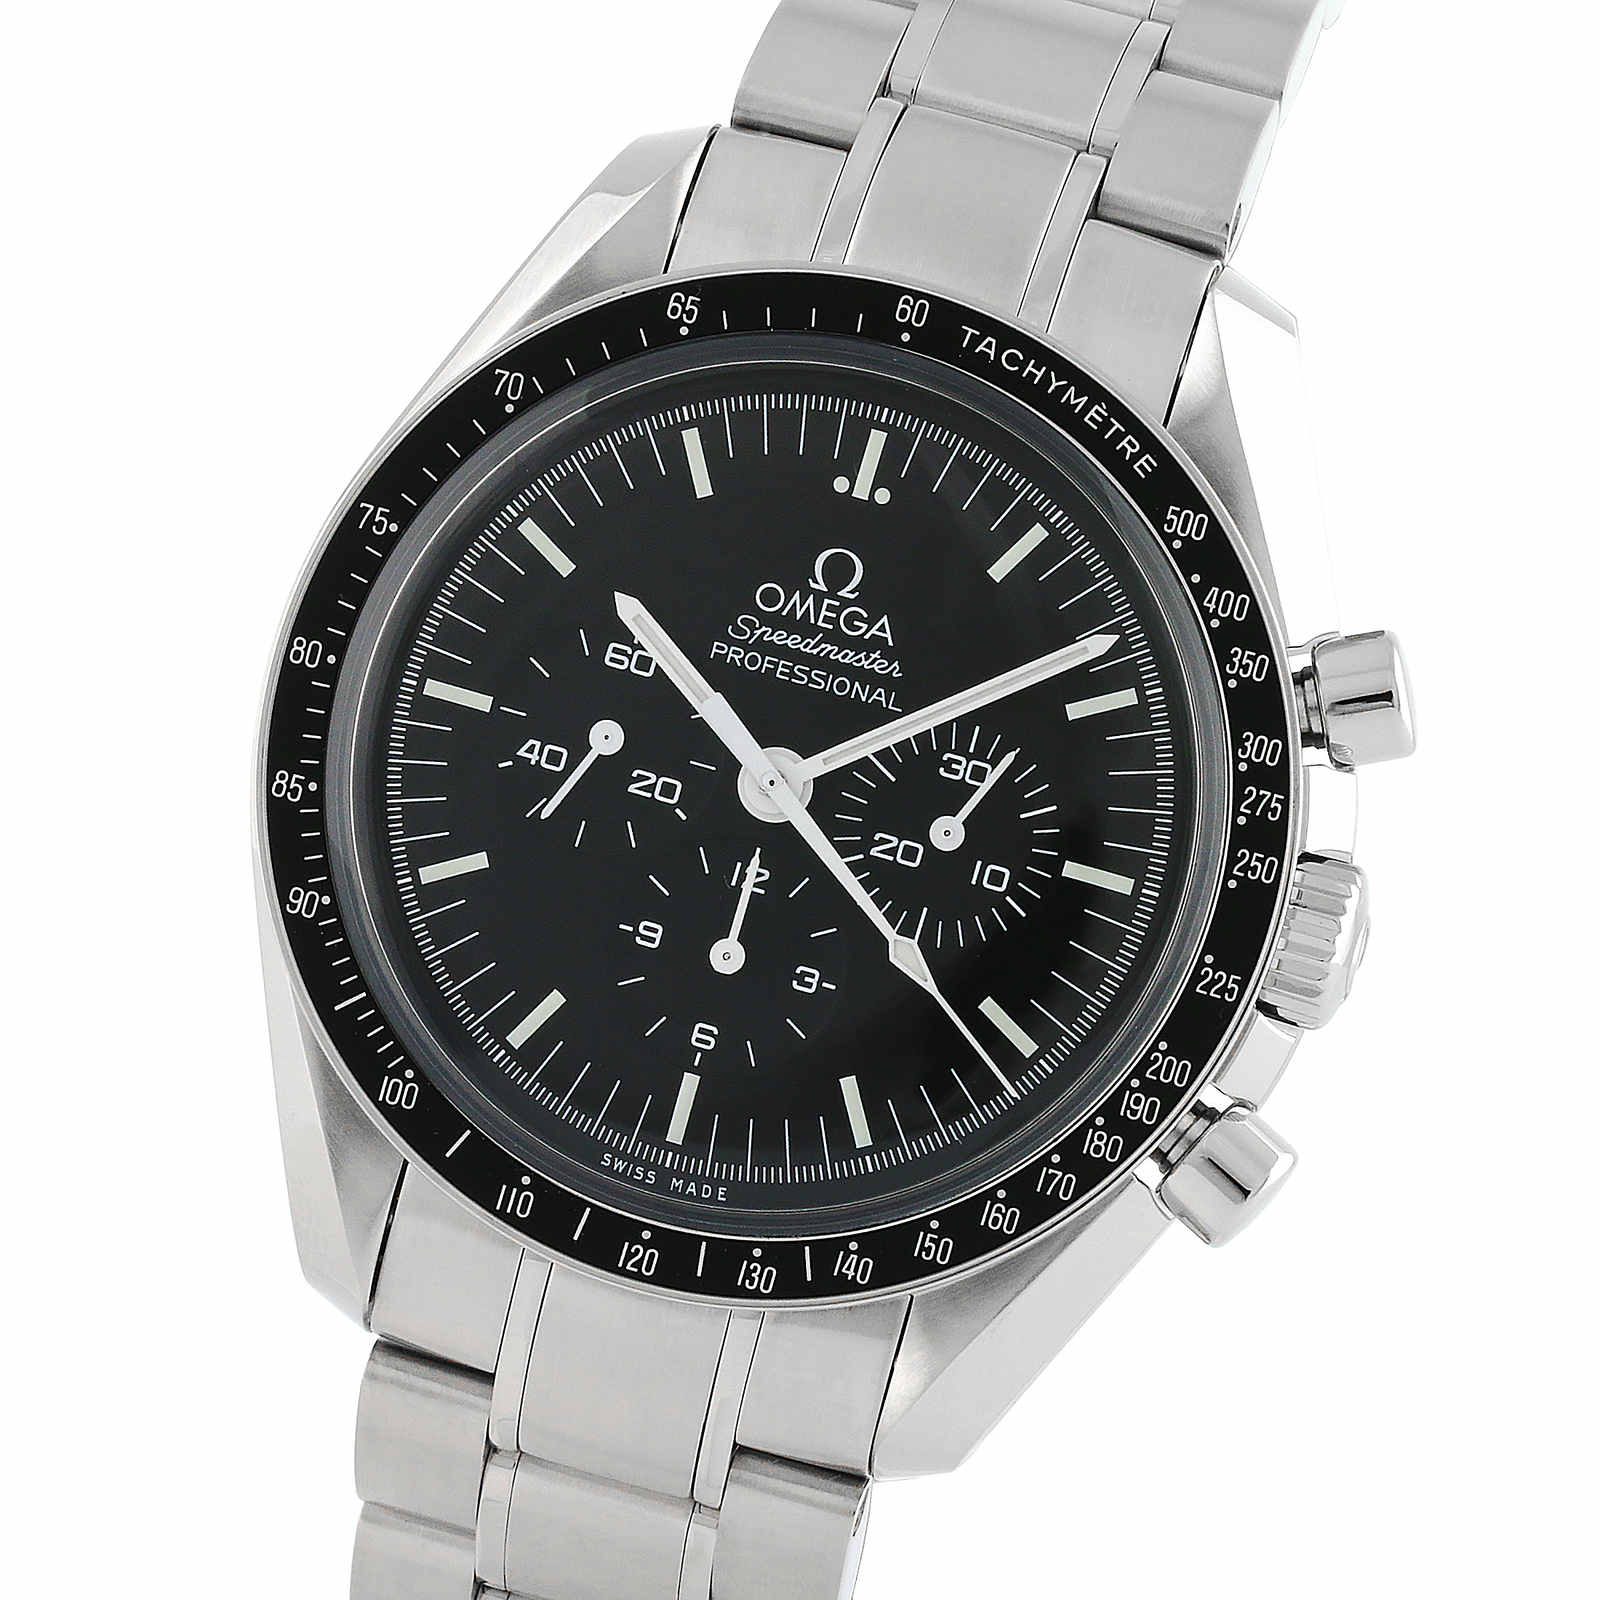 Omega Speedmaster Professional Moonwatch First Watch On ...